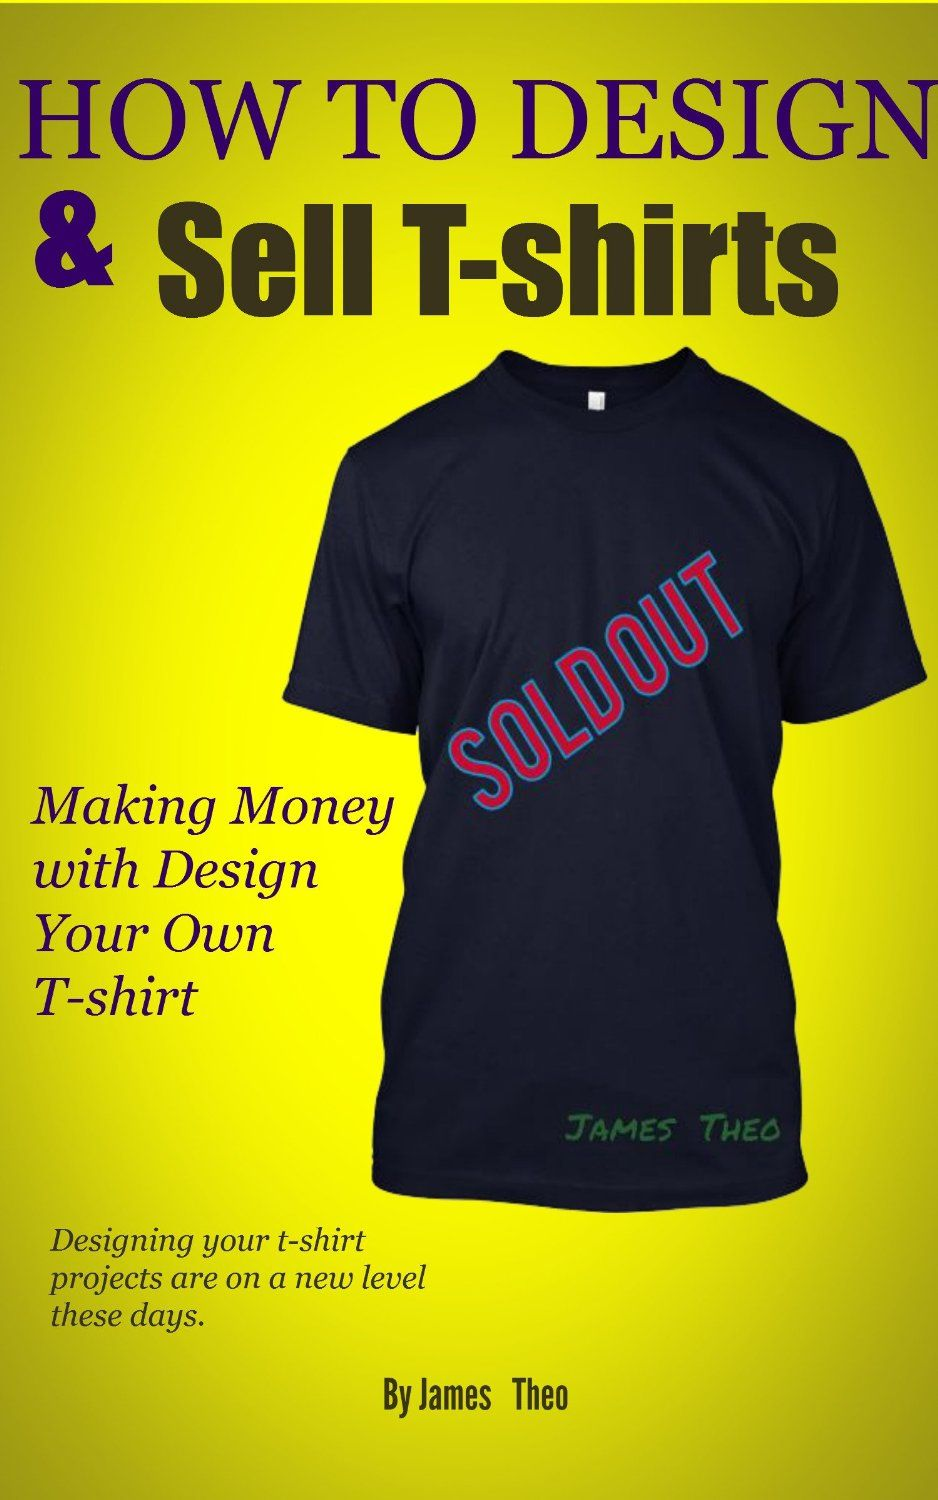 How to Design and Sell Tshirts Making Money with Design